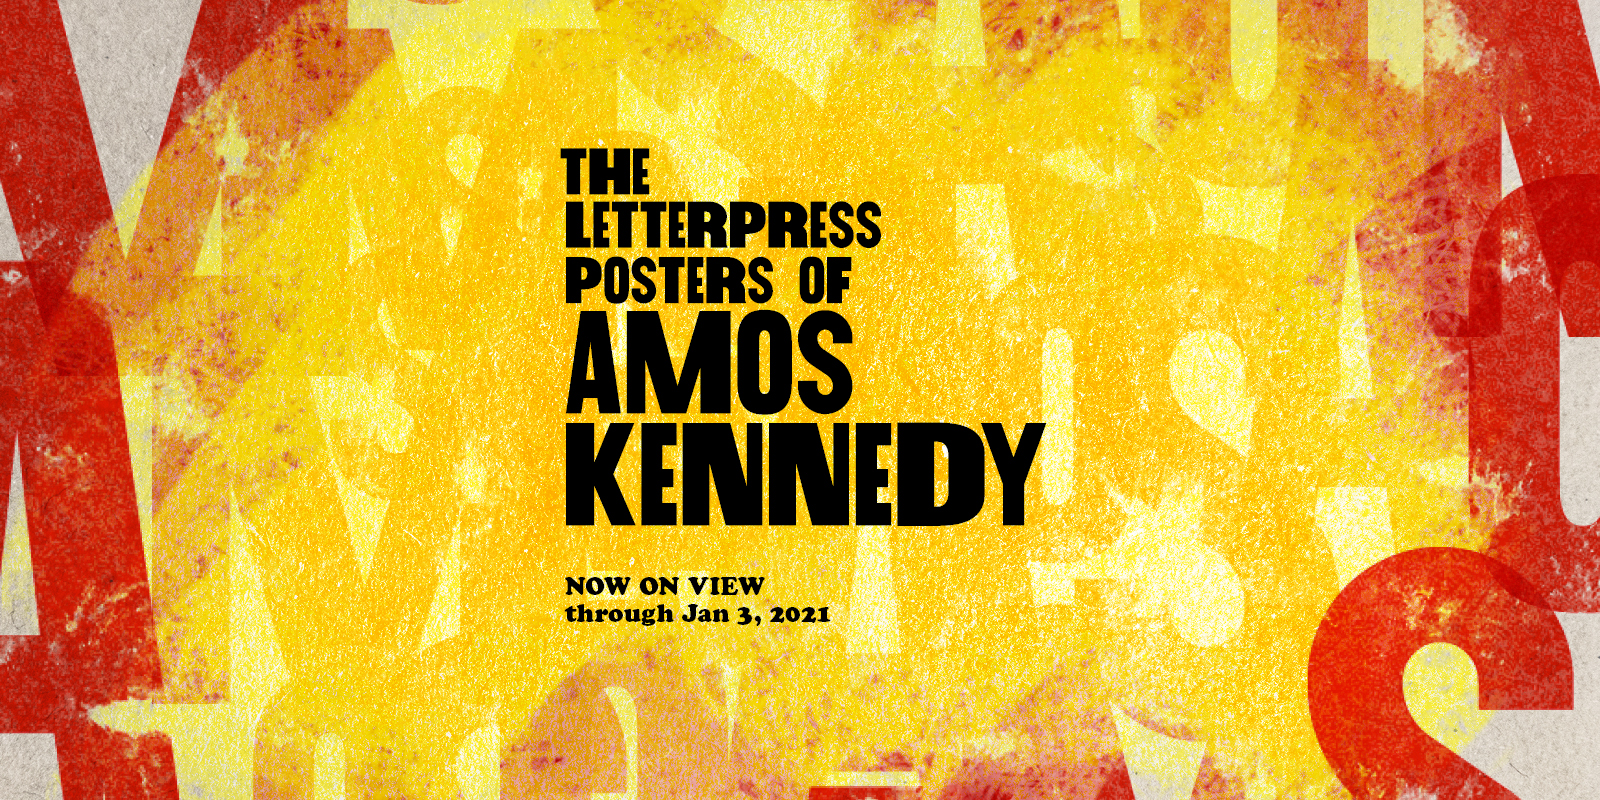 A graphic imitation of letterpressing with letters scrambled in the background in red with a yellow hue. the text reads the letterpress portraits of Amos Kennedy now on view through Jan 3